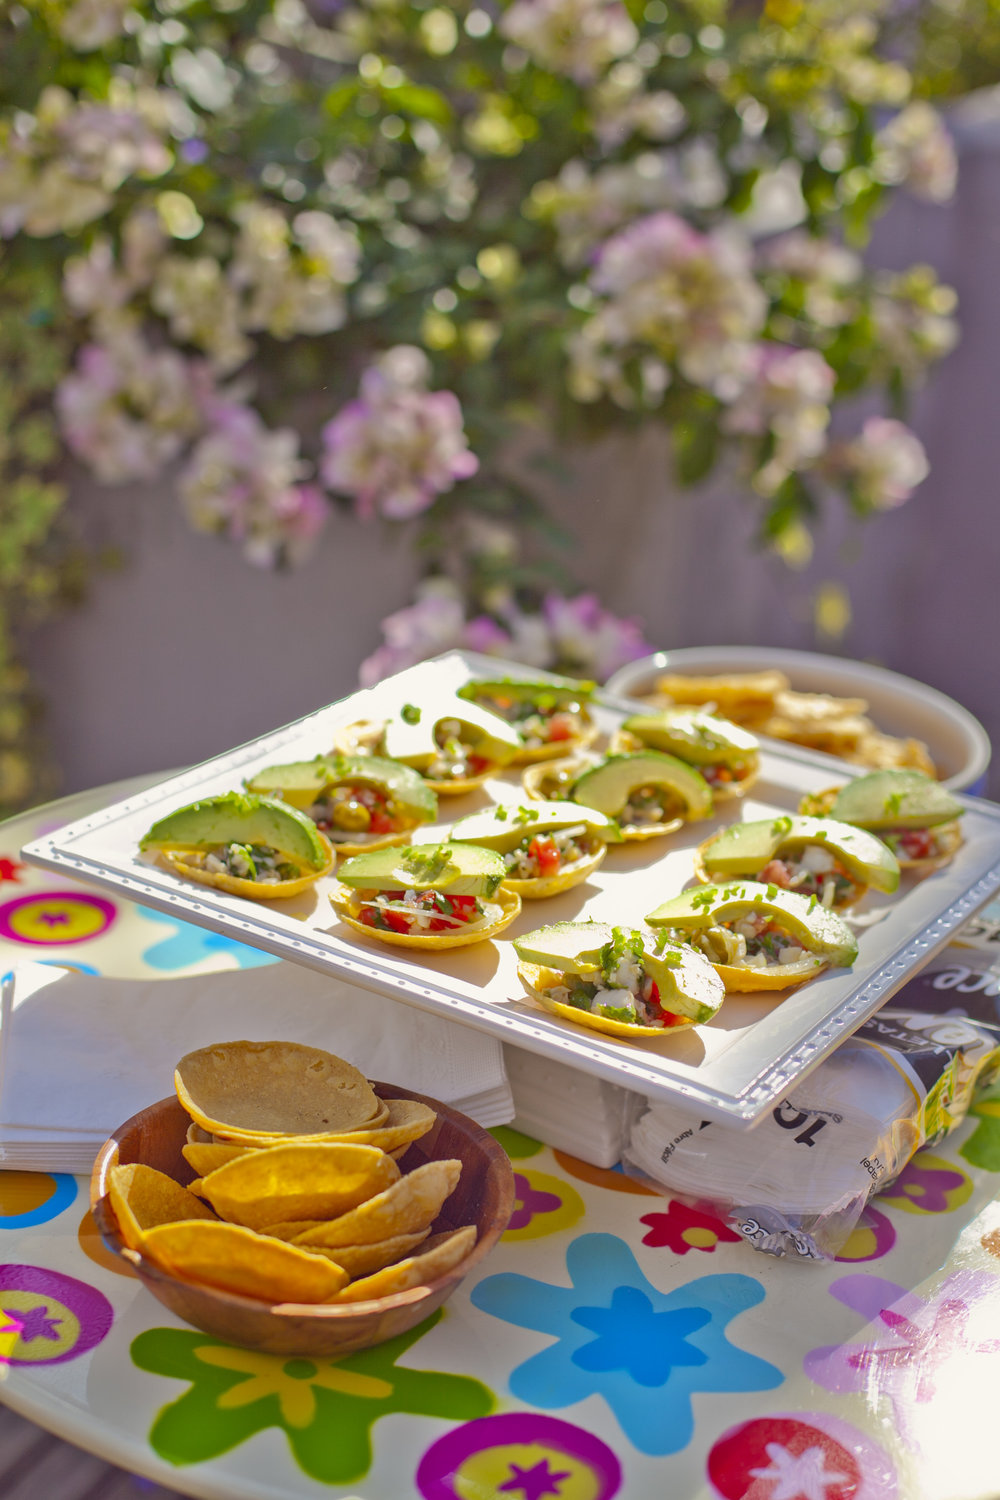 Copy of platter of Ceviche Tostadas